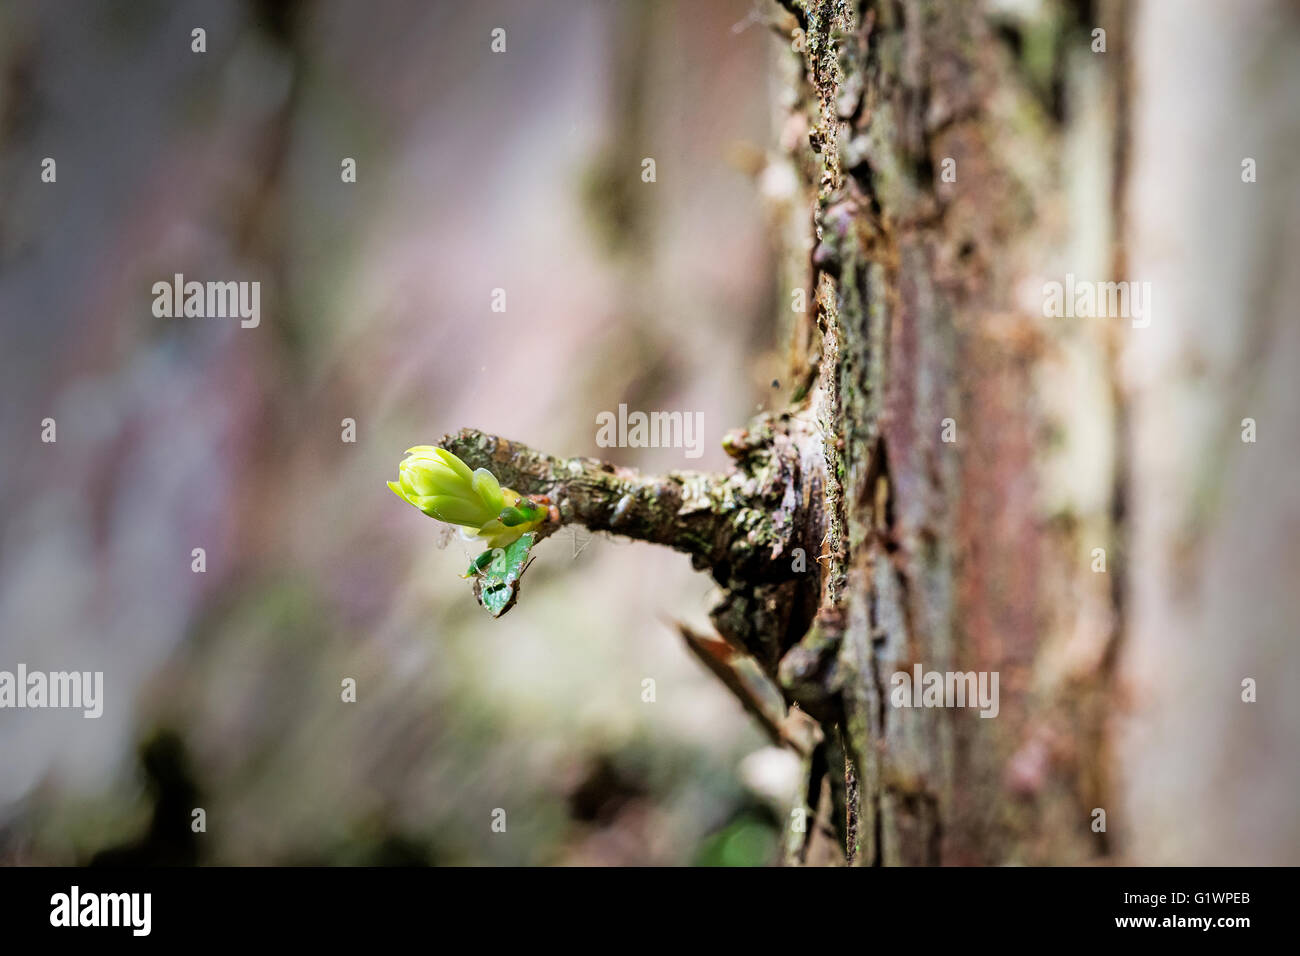 New shoot springs from the trunk of a fir tree in Marbury Park, Comberbach, Northwich, Cheshire, England Stock Photo